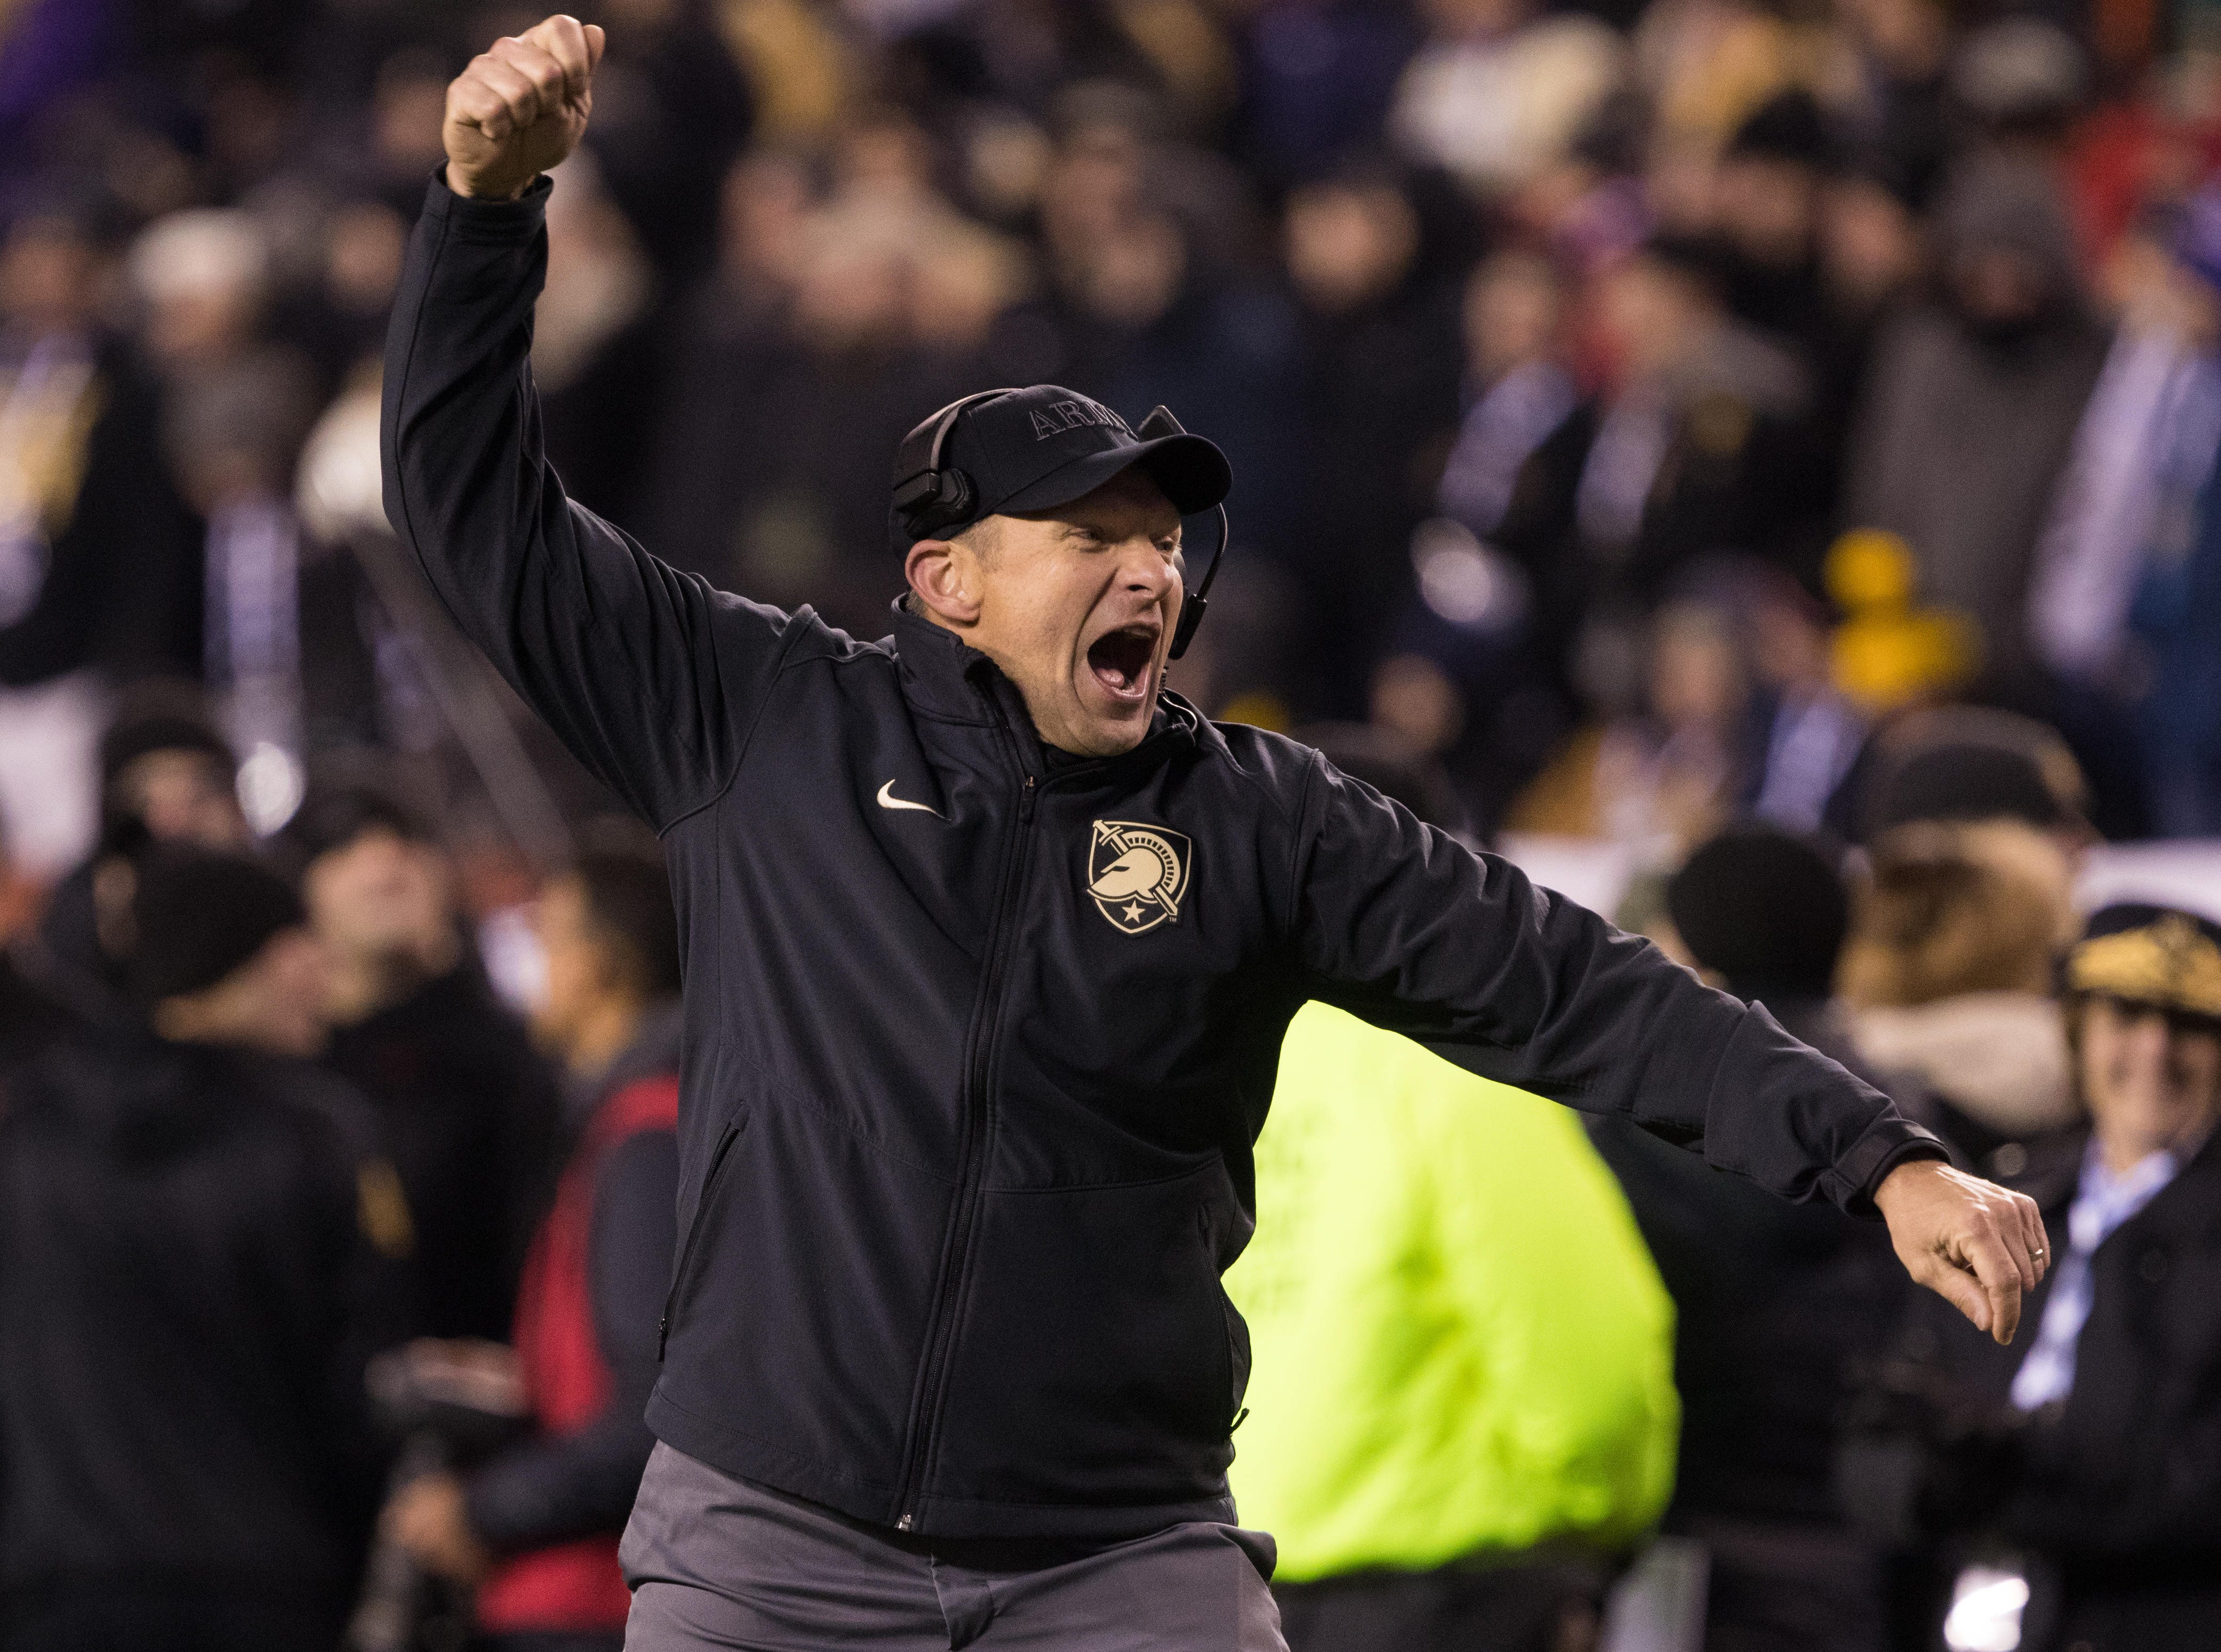 Army Black Knights head coach Jeff Monken reacts during the fourth quarter against the Navy Midshipmen at Lincoln Financial Field.